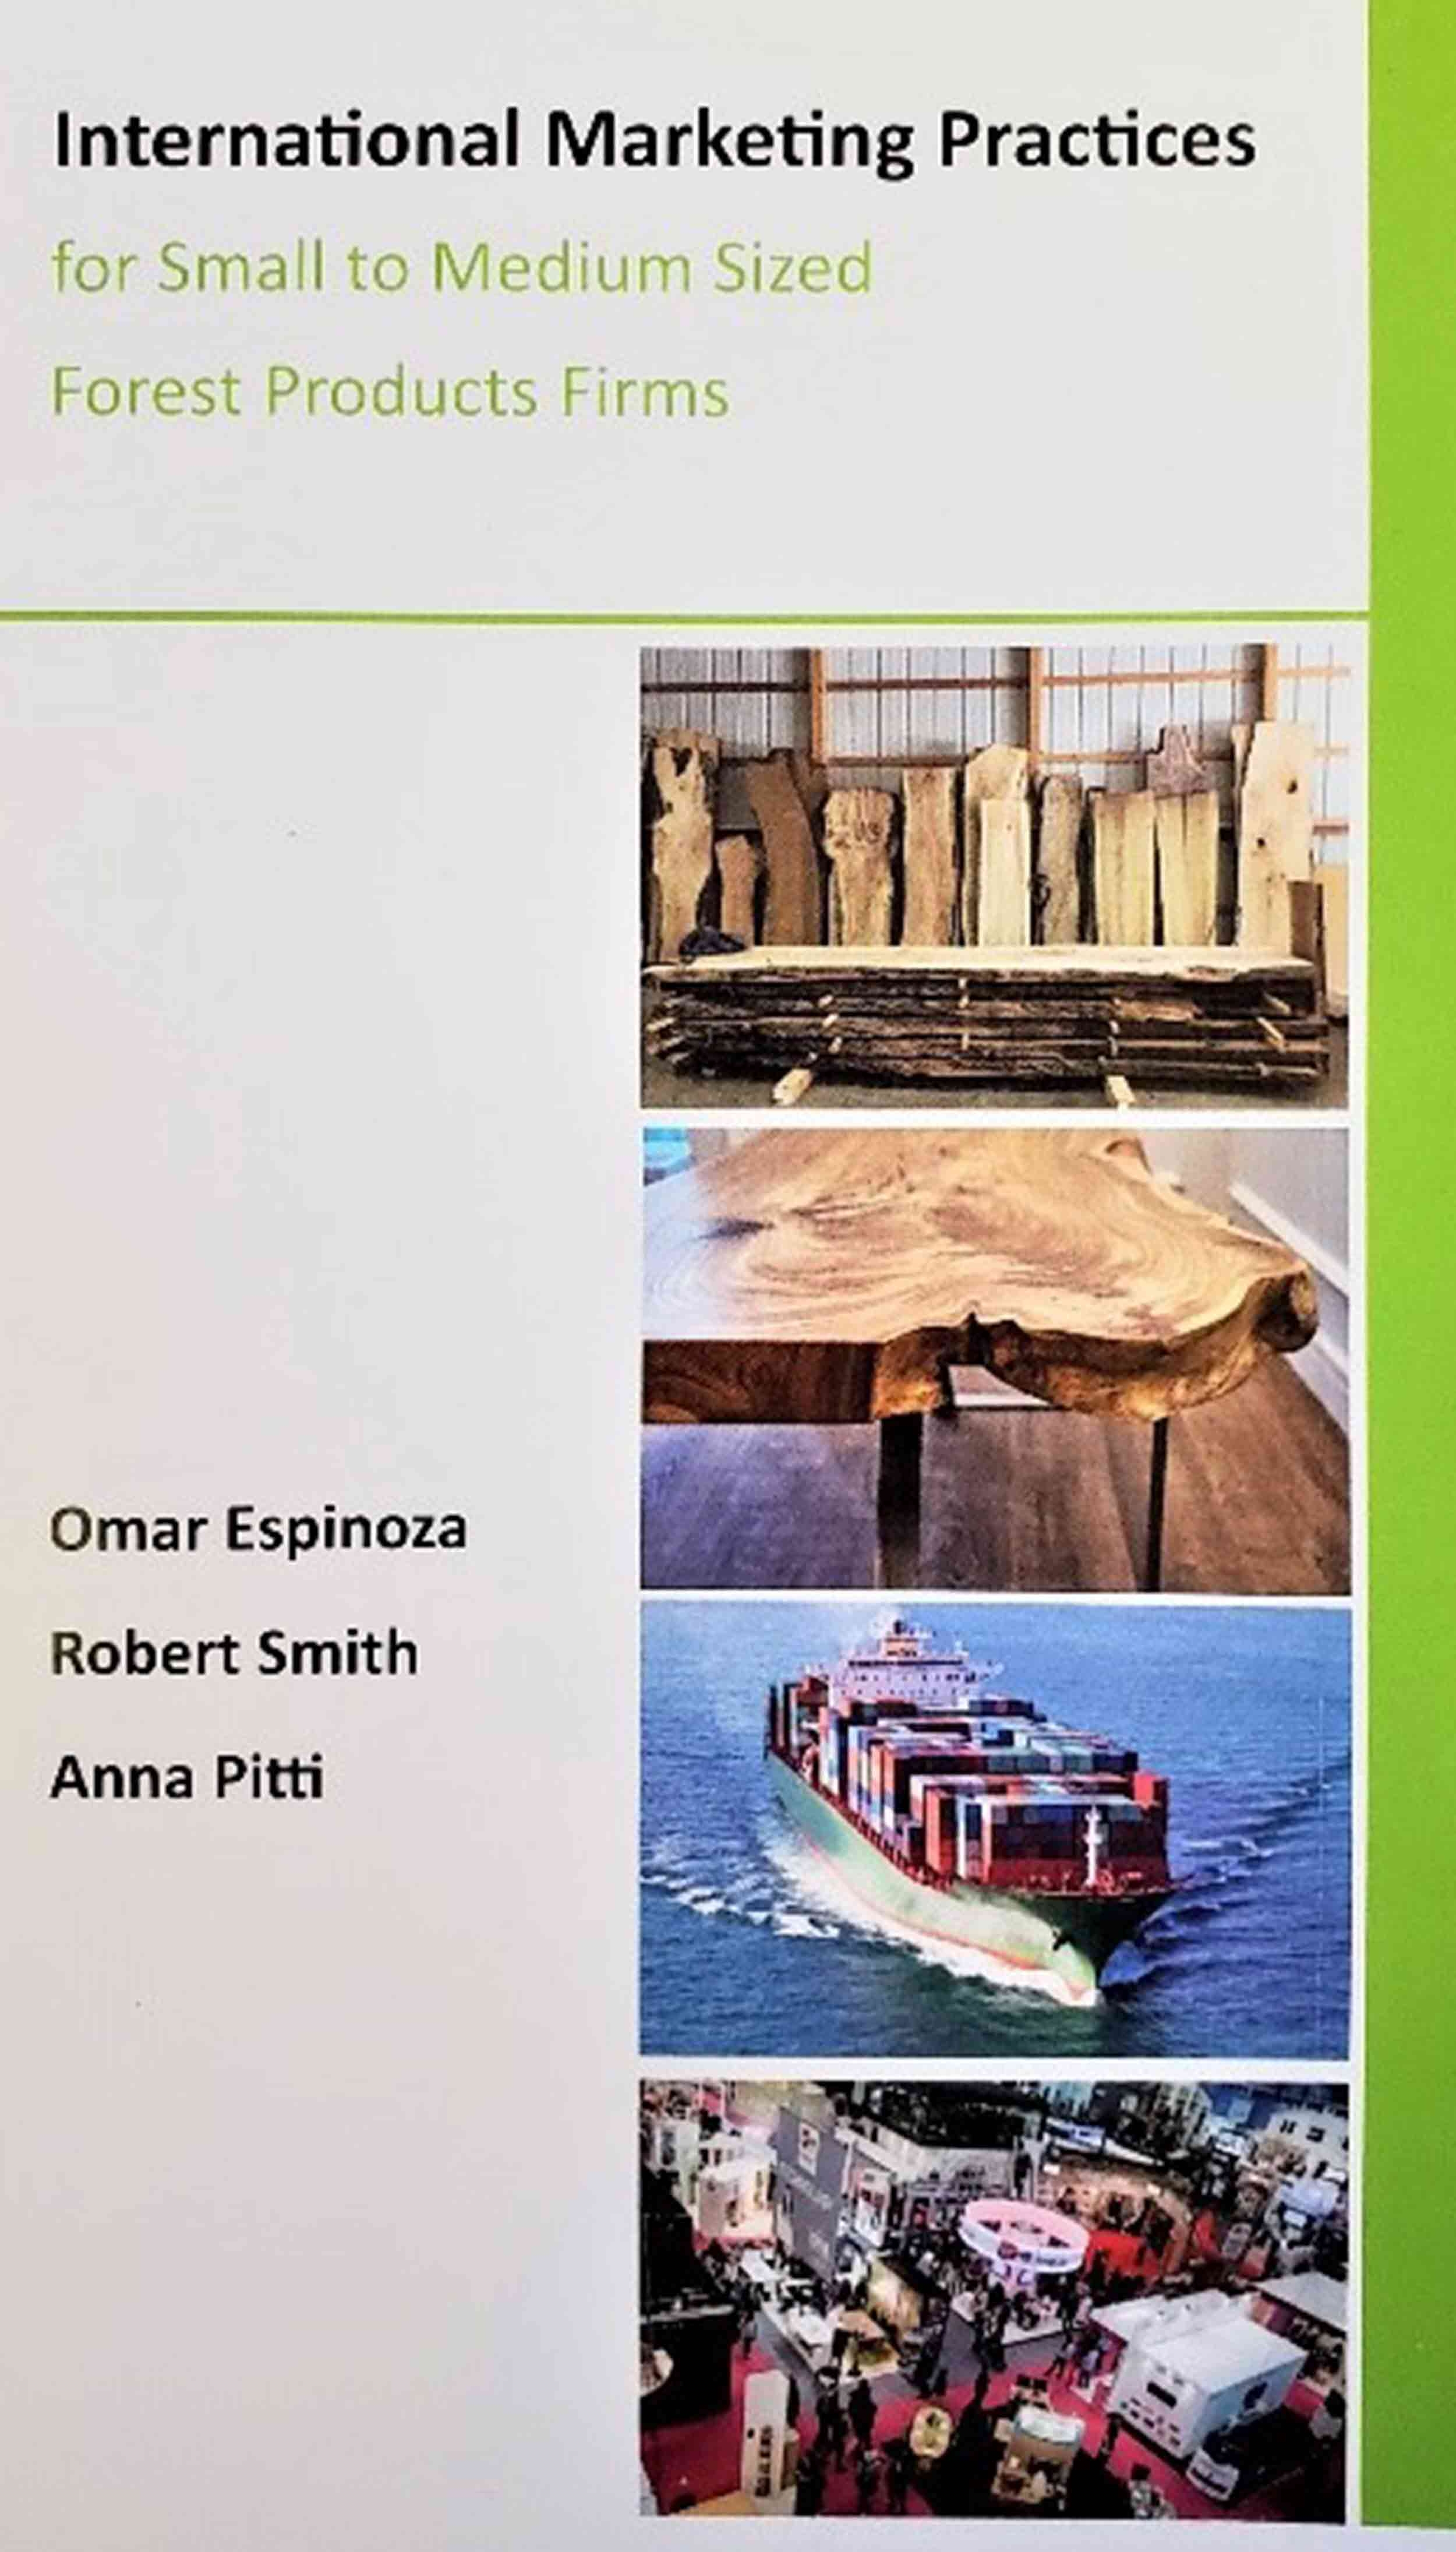 Book cover titled International Marketing Practices for Small to Medium Sized Forest Products Firms with authors Omar Espinoza, Robert Smith, and Anna Pitti. Four pictures on right side of cover. First, stacks of raw edge planks. Second, a live edge finished table. Third, a cargo ship filled with containers on the open sea. Fourth, looking down on a trade show floor.